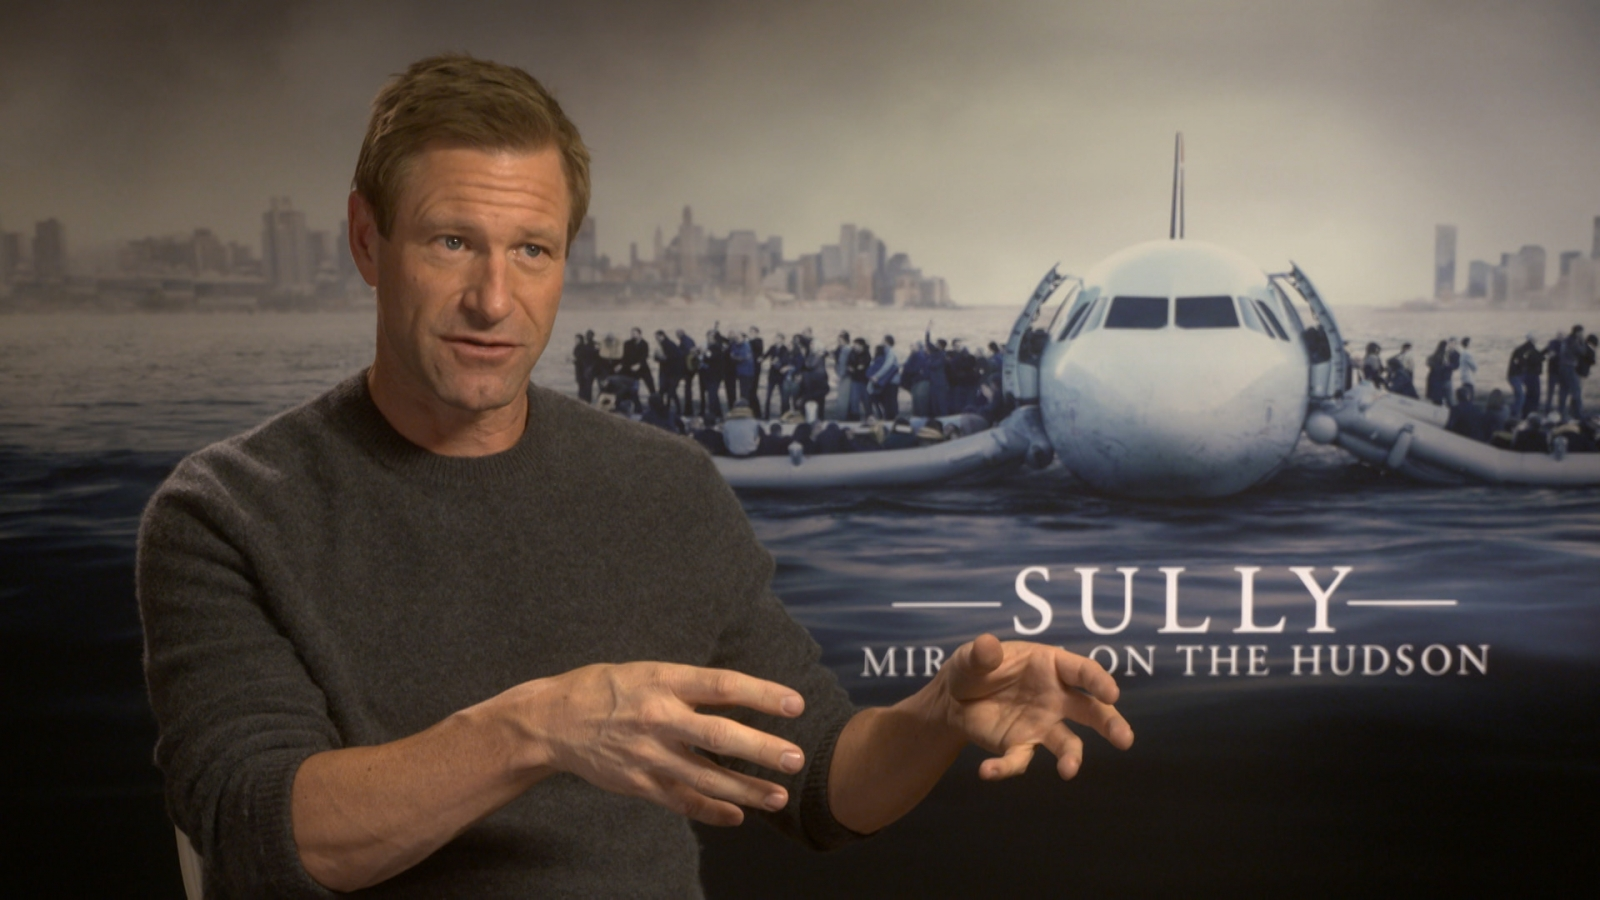 Aaron Eckhart on 'fanboying' over Tom Hanks and filming the water landing in Sully